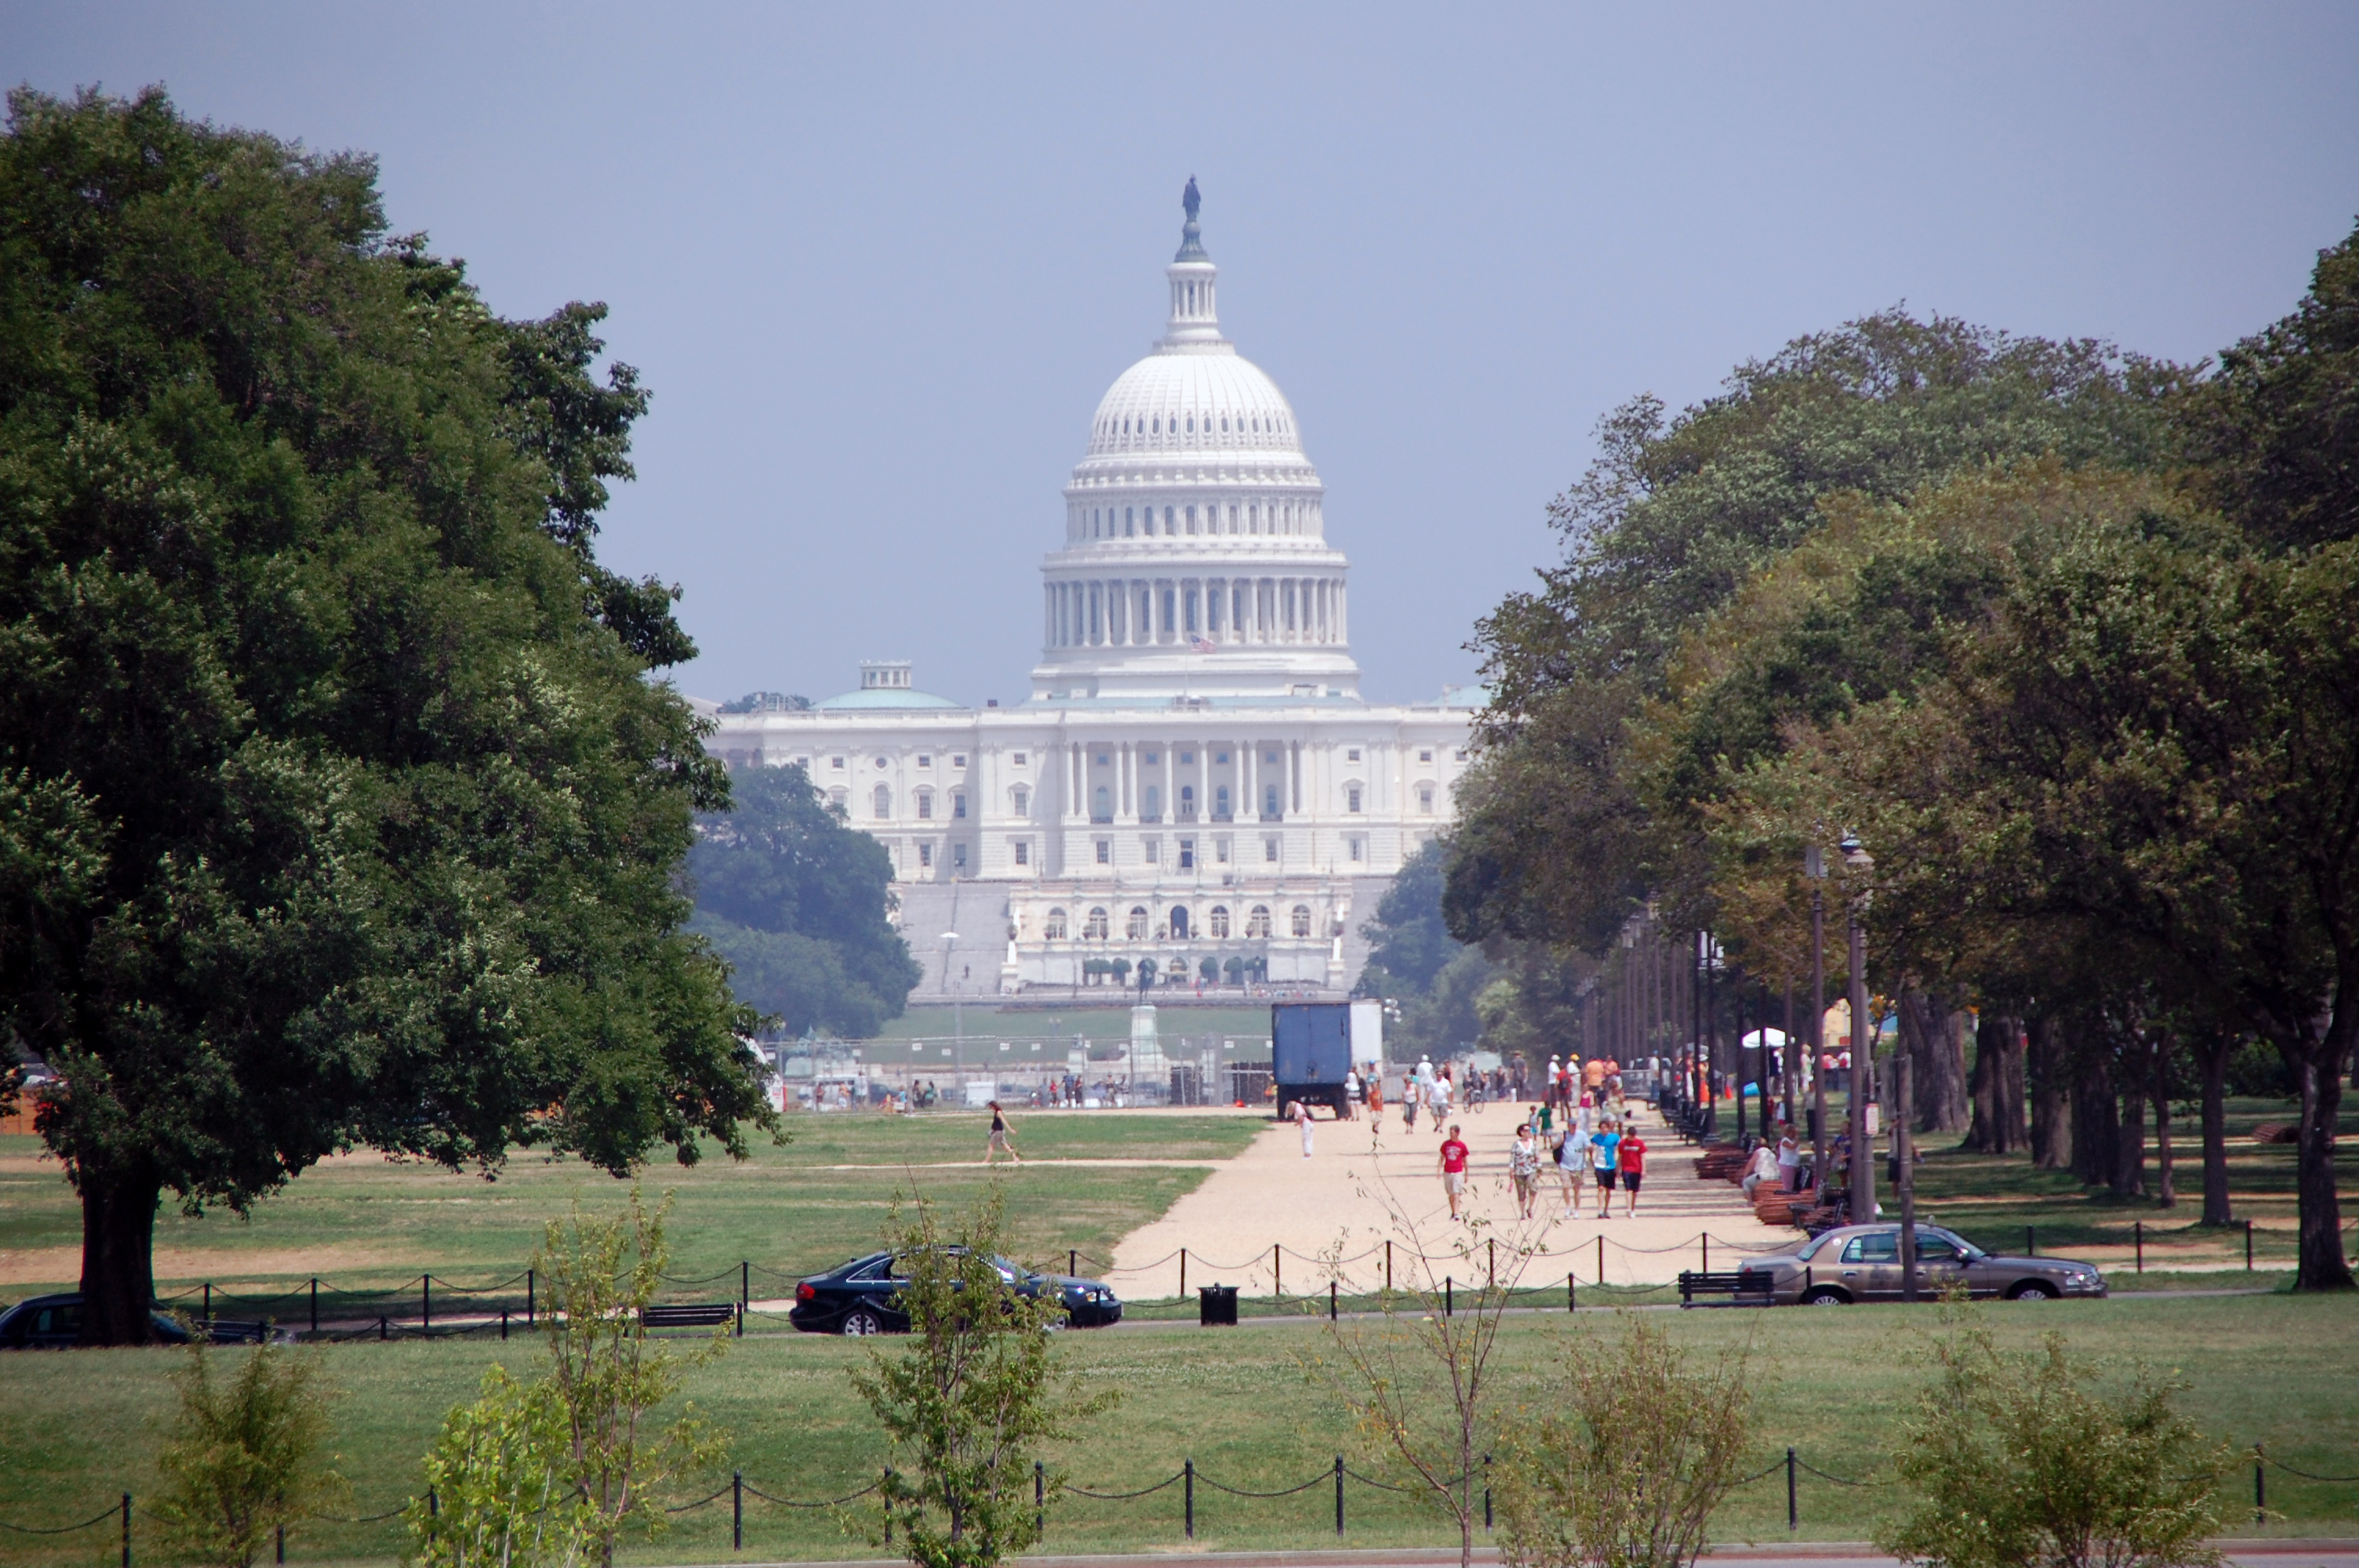 The US Capitol, serves as the seat of government for Congress